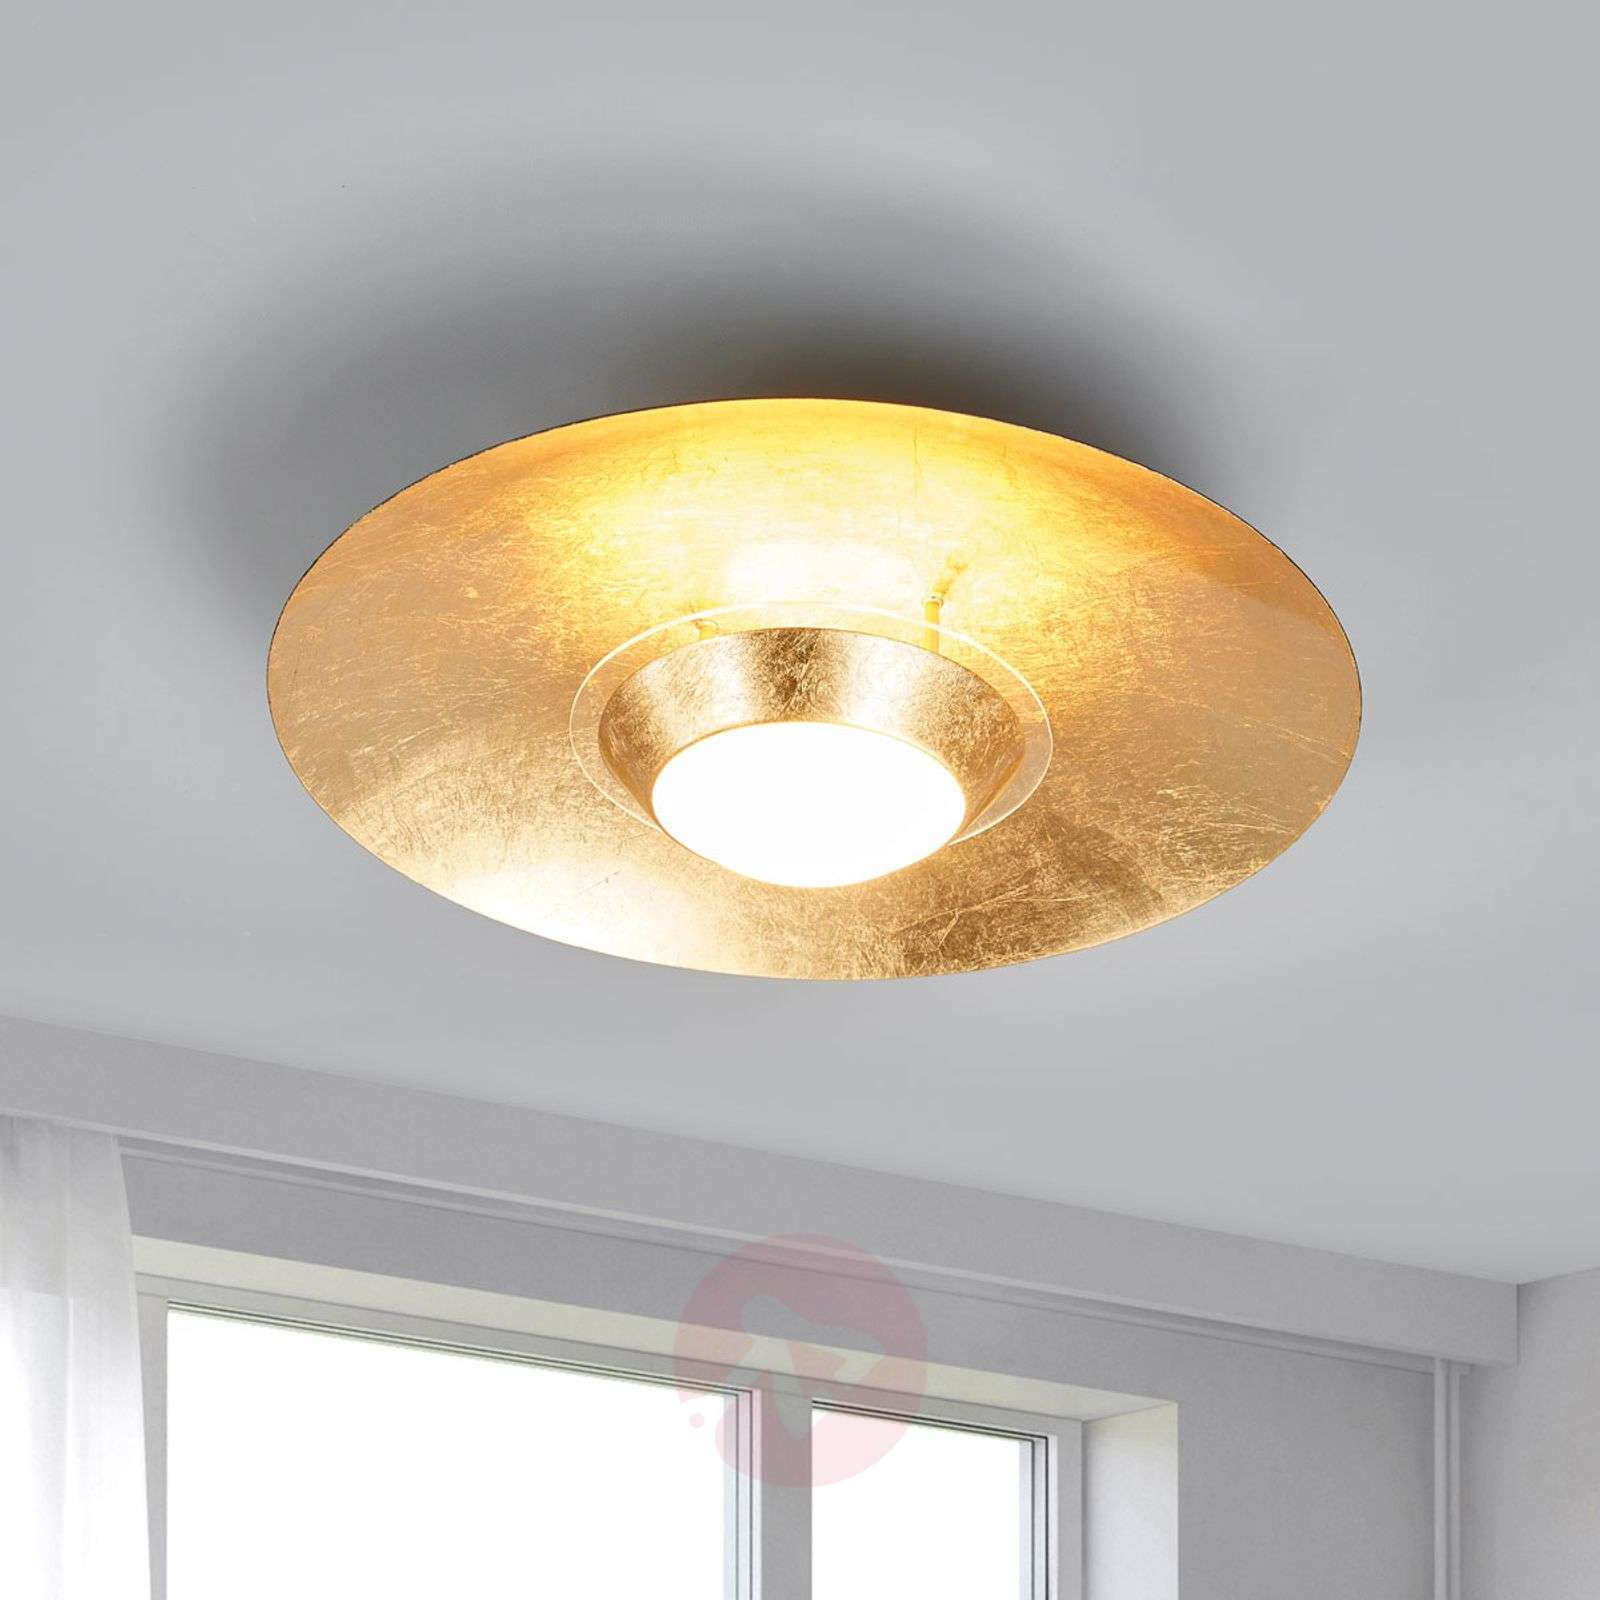 Black and gold LED ceiling light Yasien-9625137-03